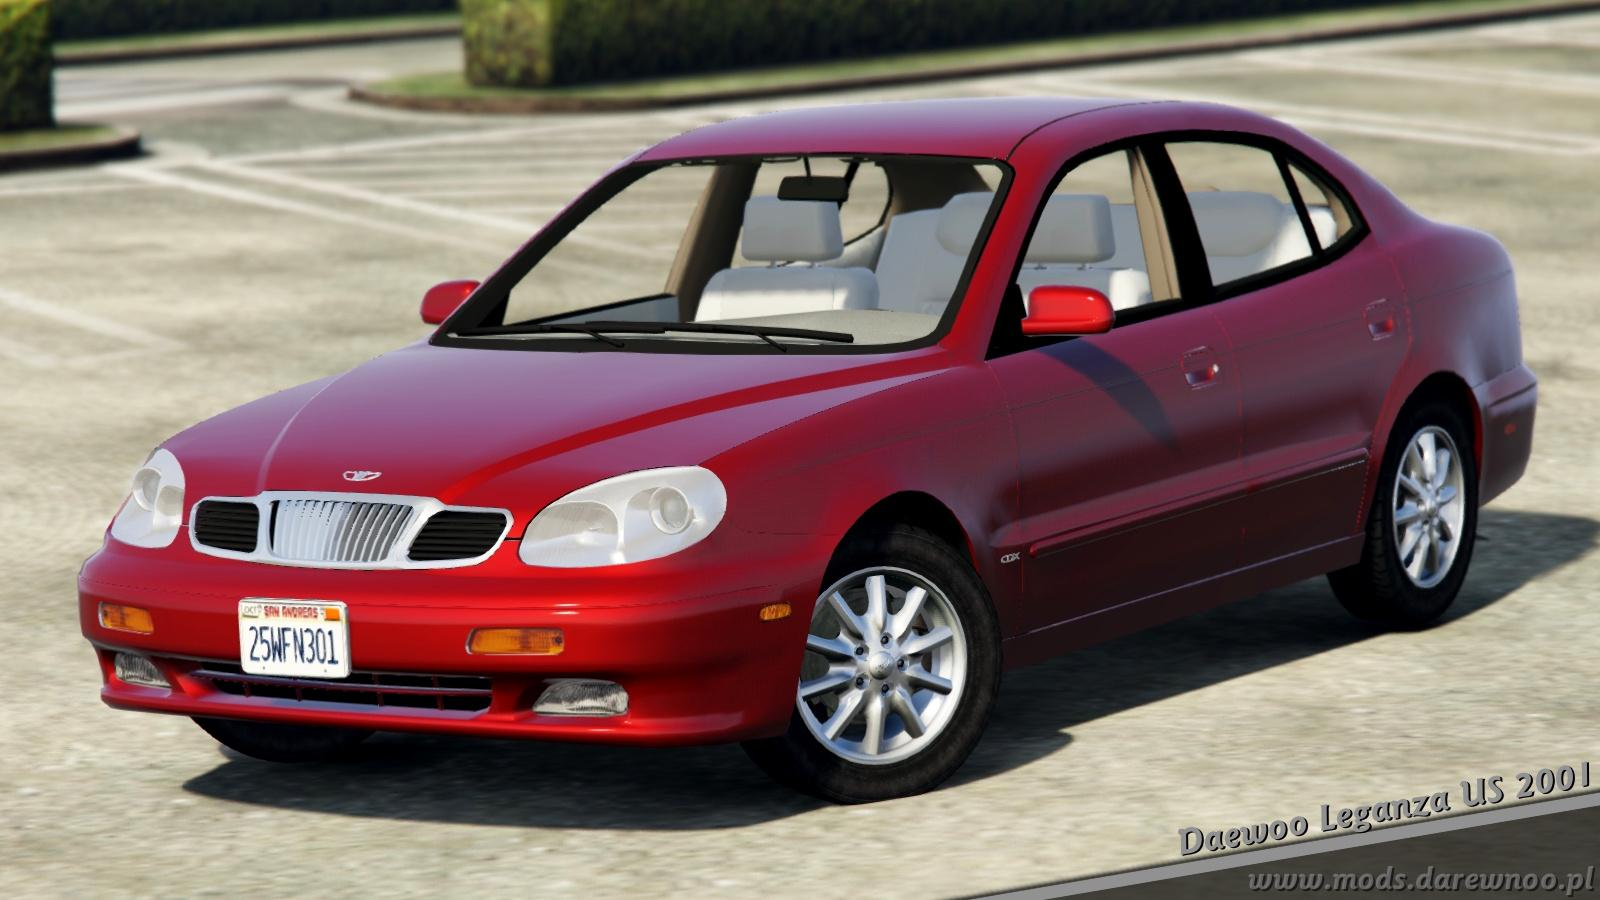 2001 daewoo leganza us add on replace tuning gta5. Black Bedroom Furniture Sets. Home Design Ideas